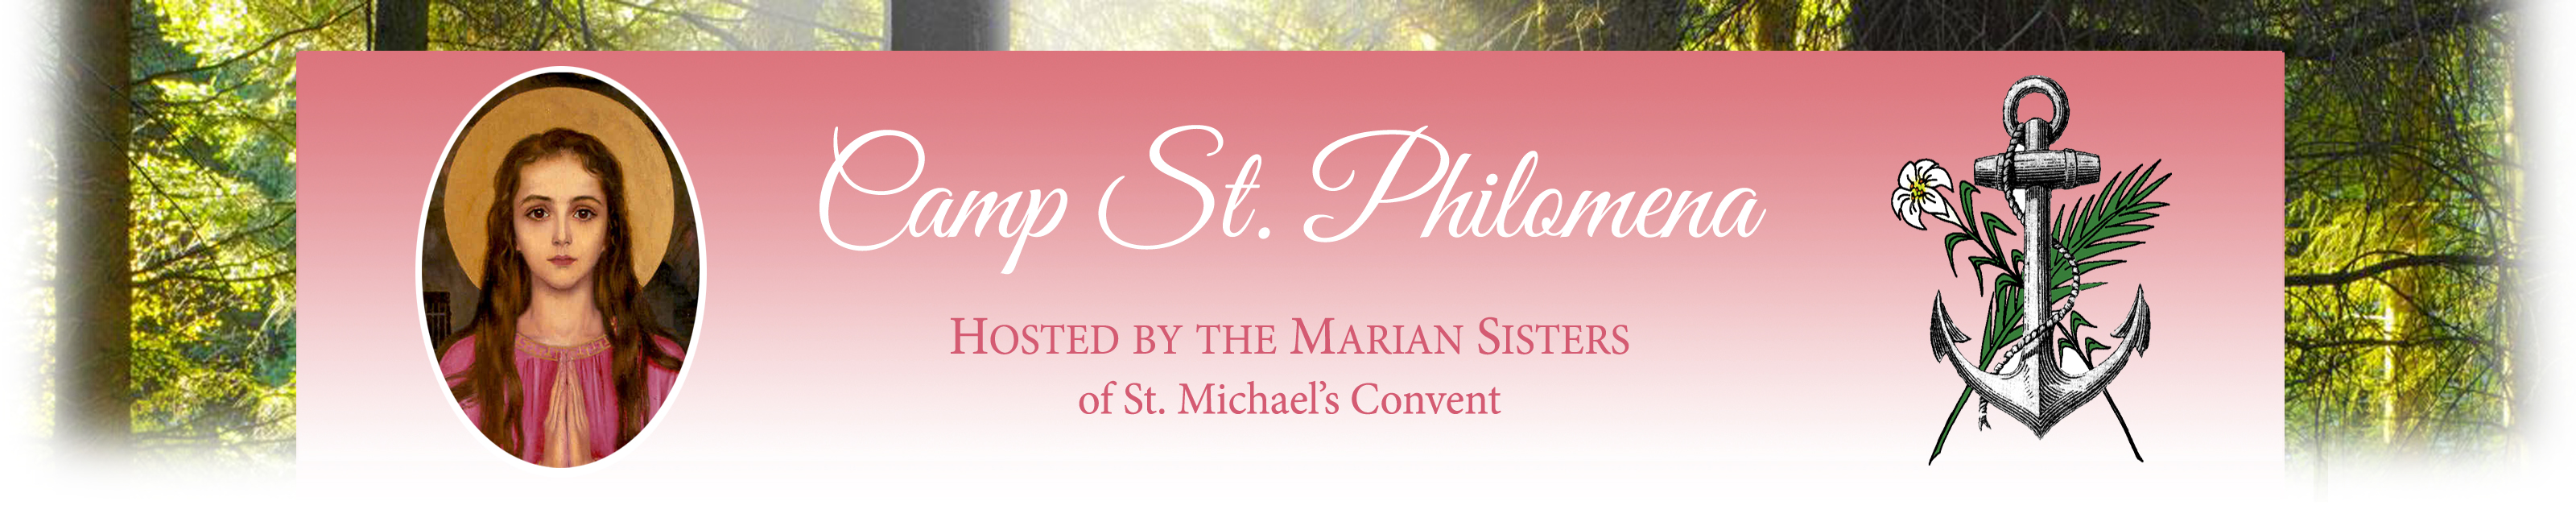 Camp St. Philomena